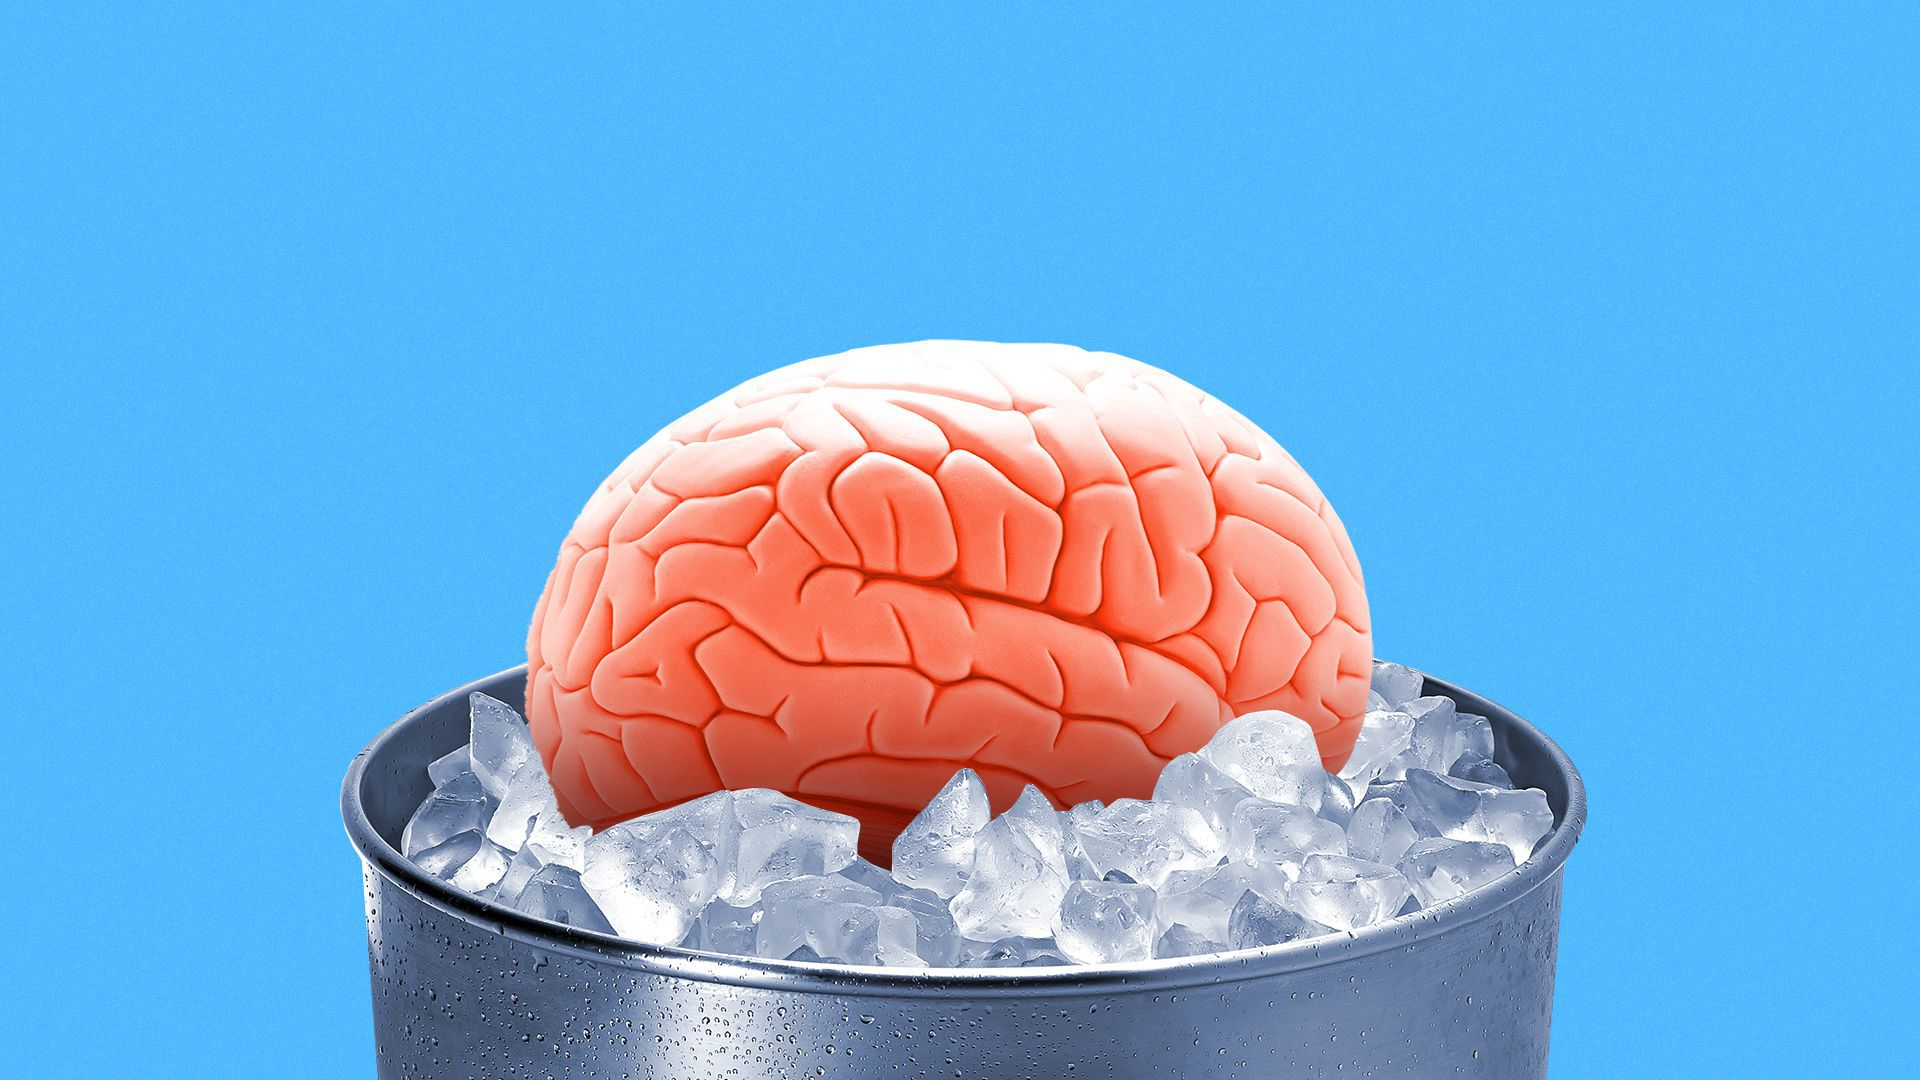 Illustration of a brain in an ice bucket